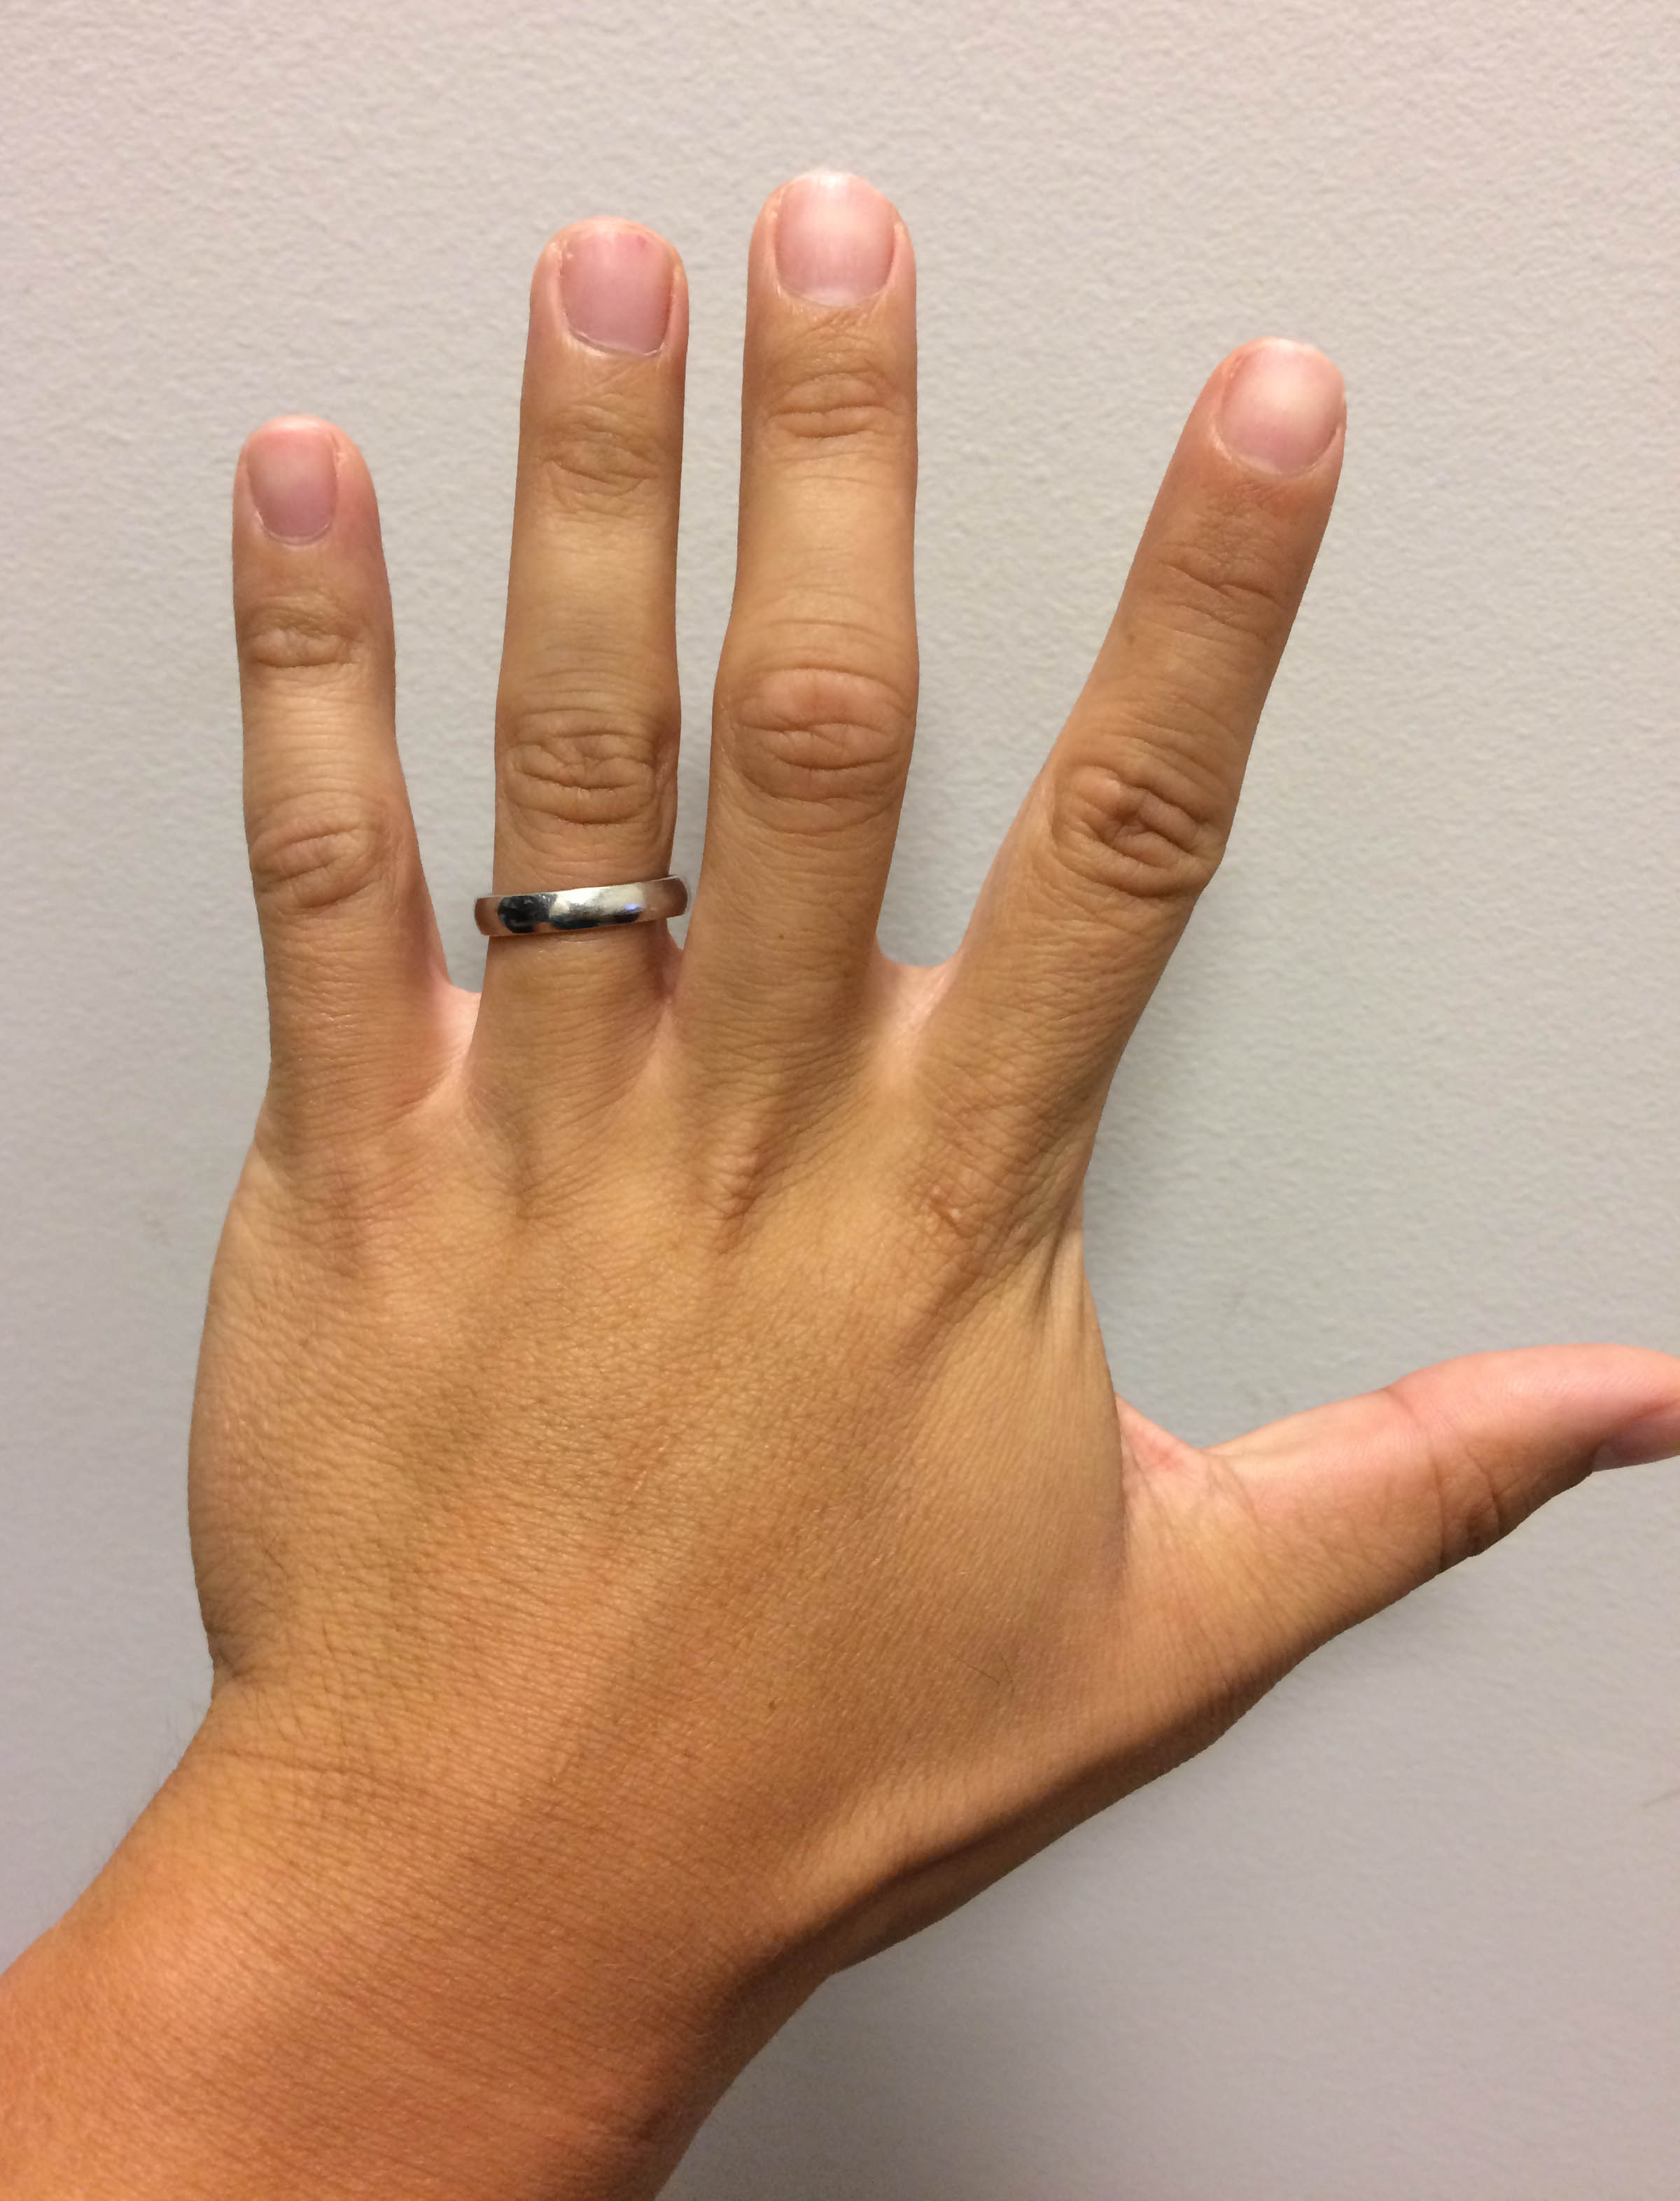 I have now worn my ring for over 100 days and it feels completely natural.